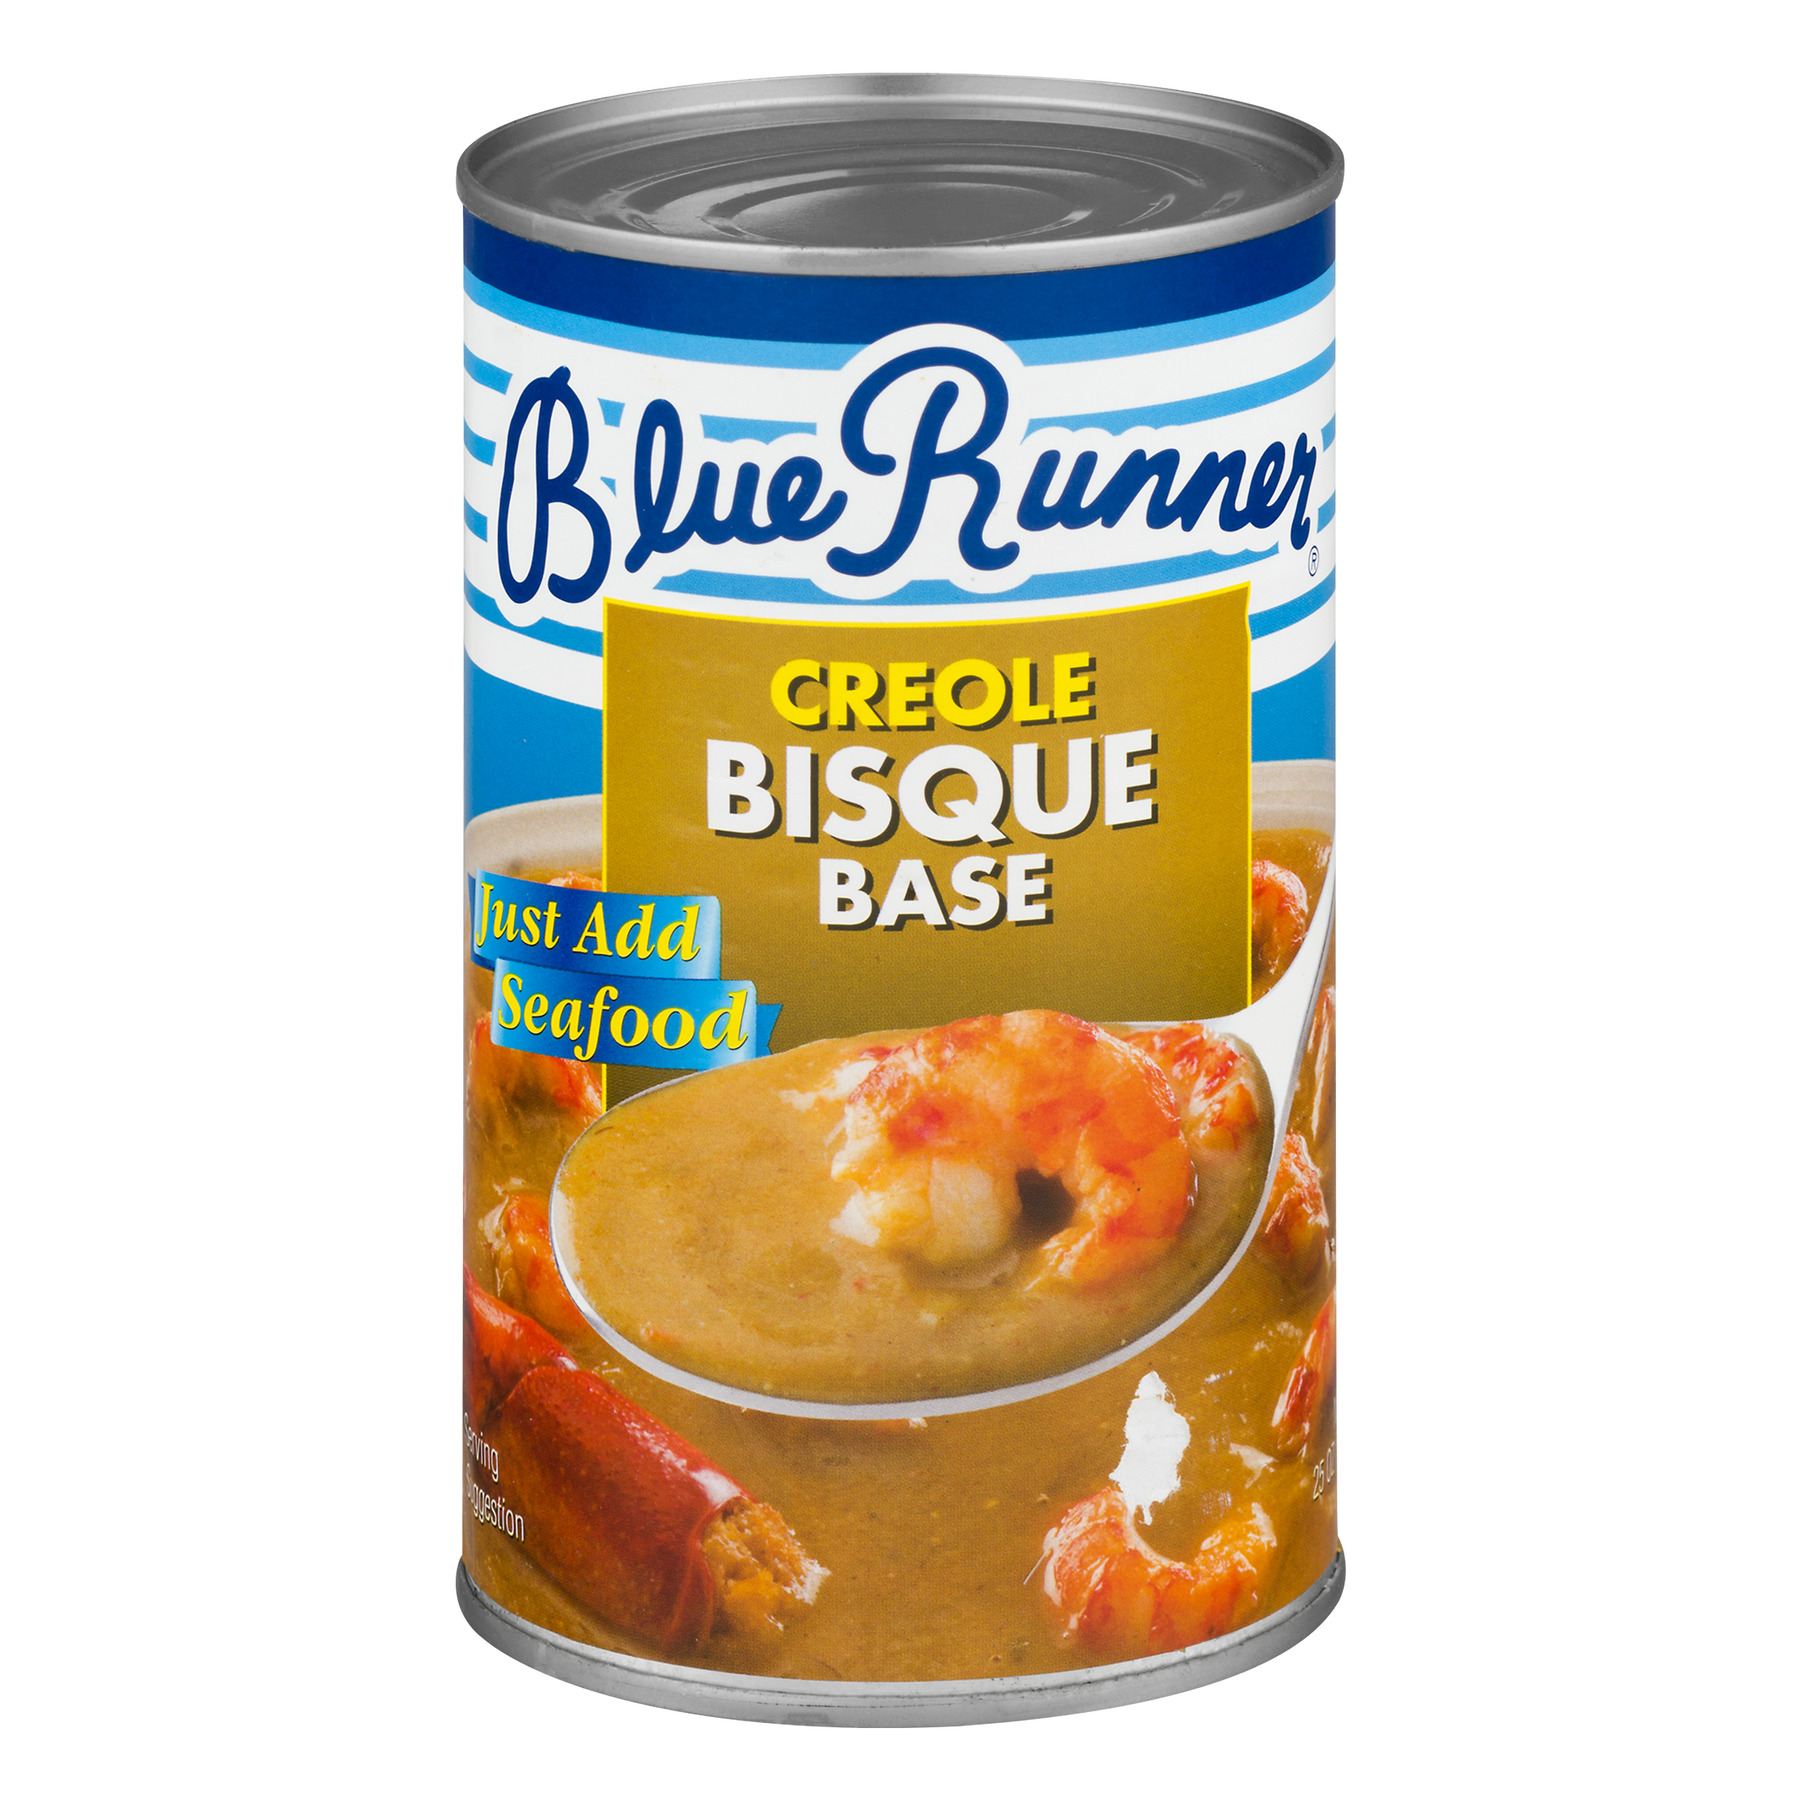 Blue Runner Creole Bisque Base, 25.0 OZ